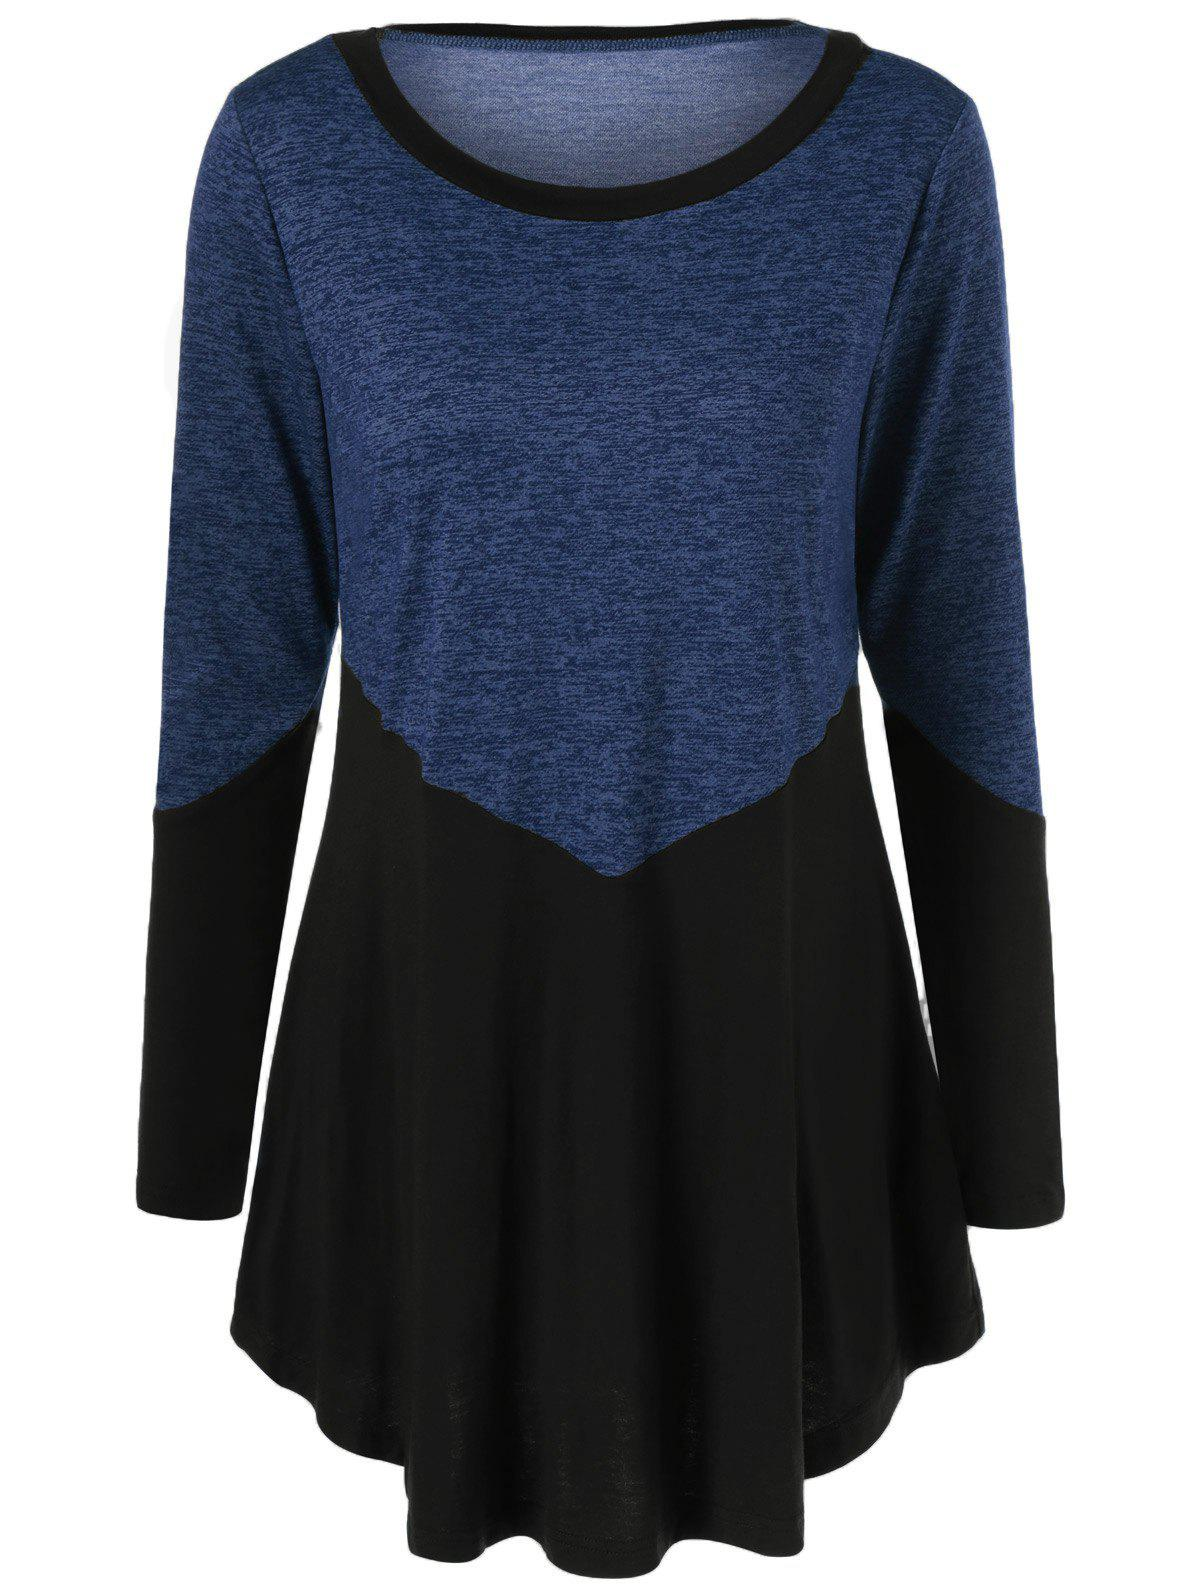 Patchwork Heather T-ShirtWOMEN<br><br>Size: XL; Color: BLACK; Material: Rayon; Sleeve Length: Full; Collar: Scoop Neck; Style: Casual; Pattern Type: Others; Season: Fall,Spring; Weight: 0.3700kg; Package Contents: 1 x T-Shirt;